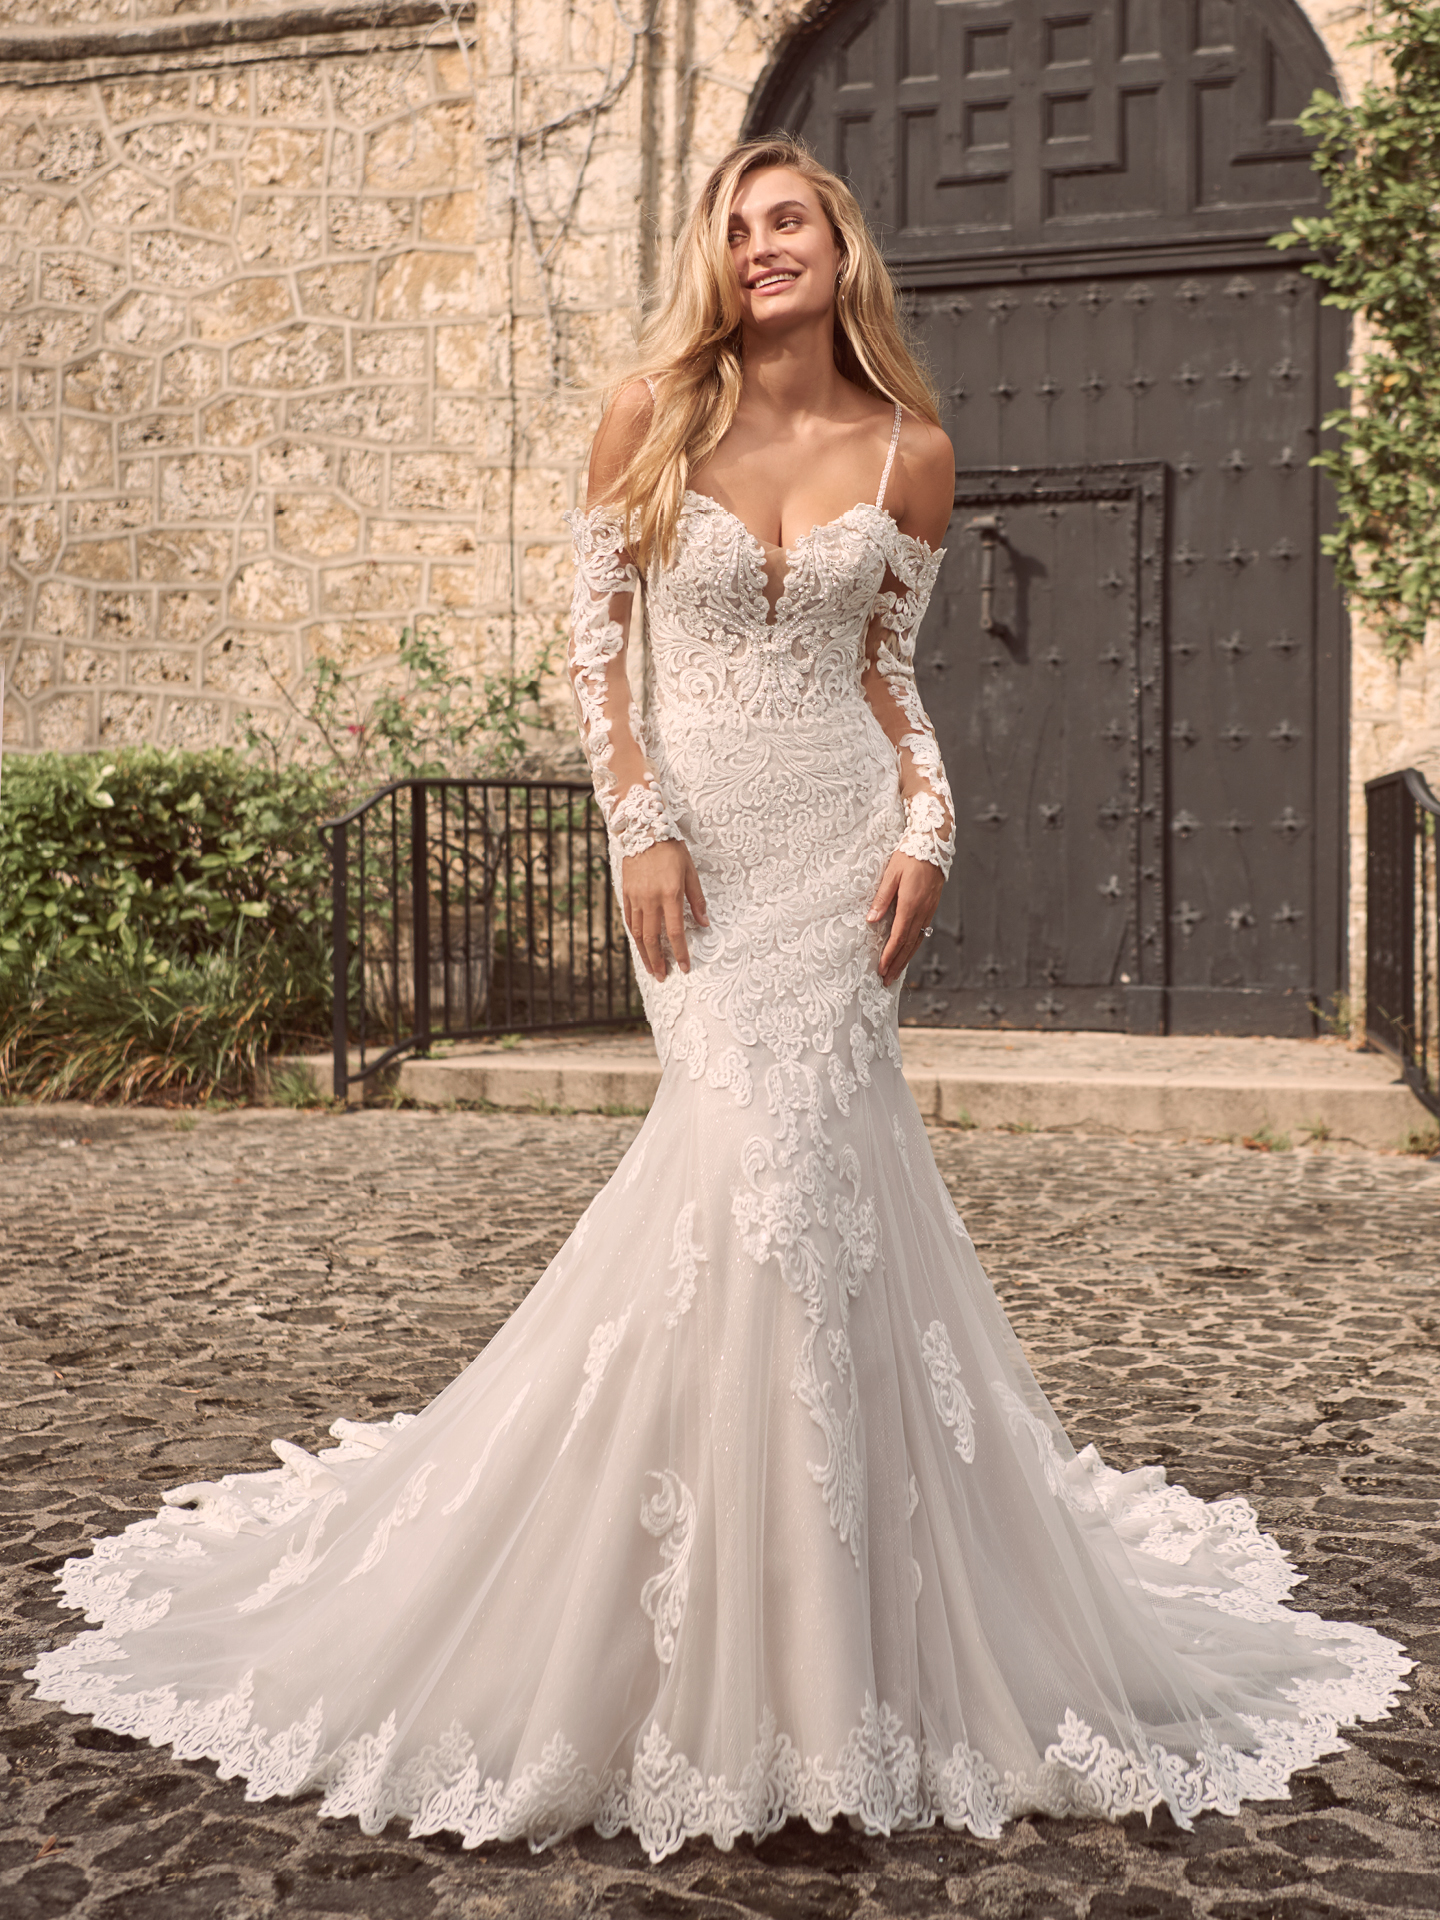 Model Wearing Off-the-Shoulder Long Sleeve Wedding Dress Called Fiona by Maggie Sottero